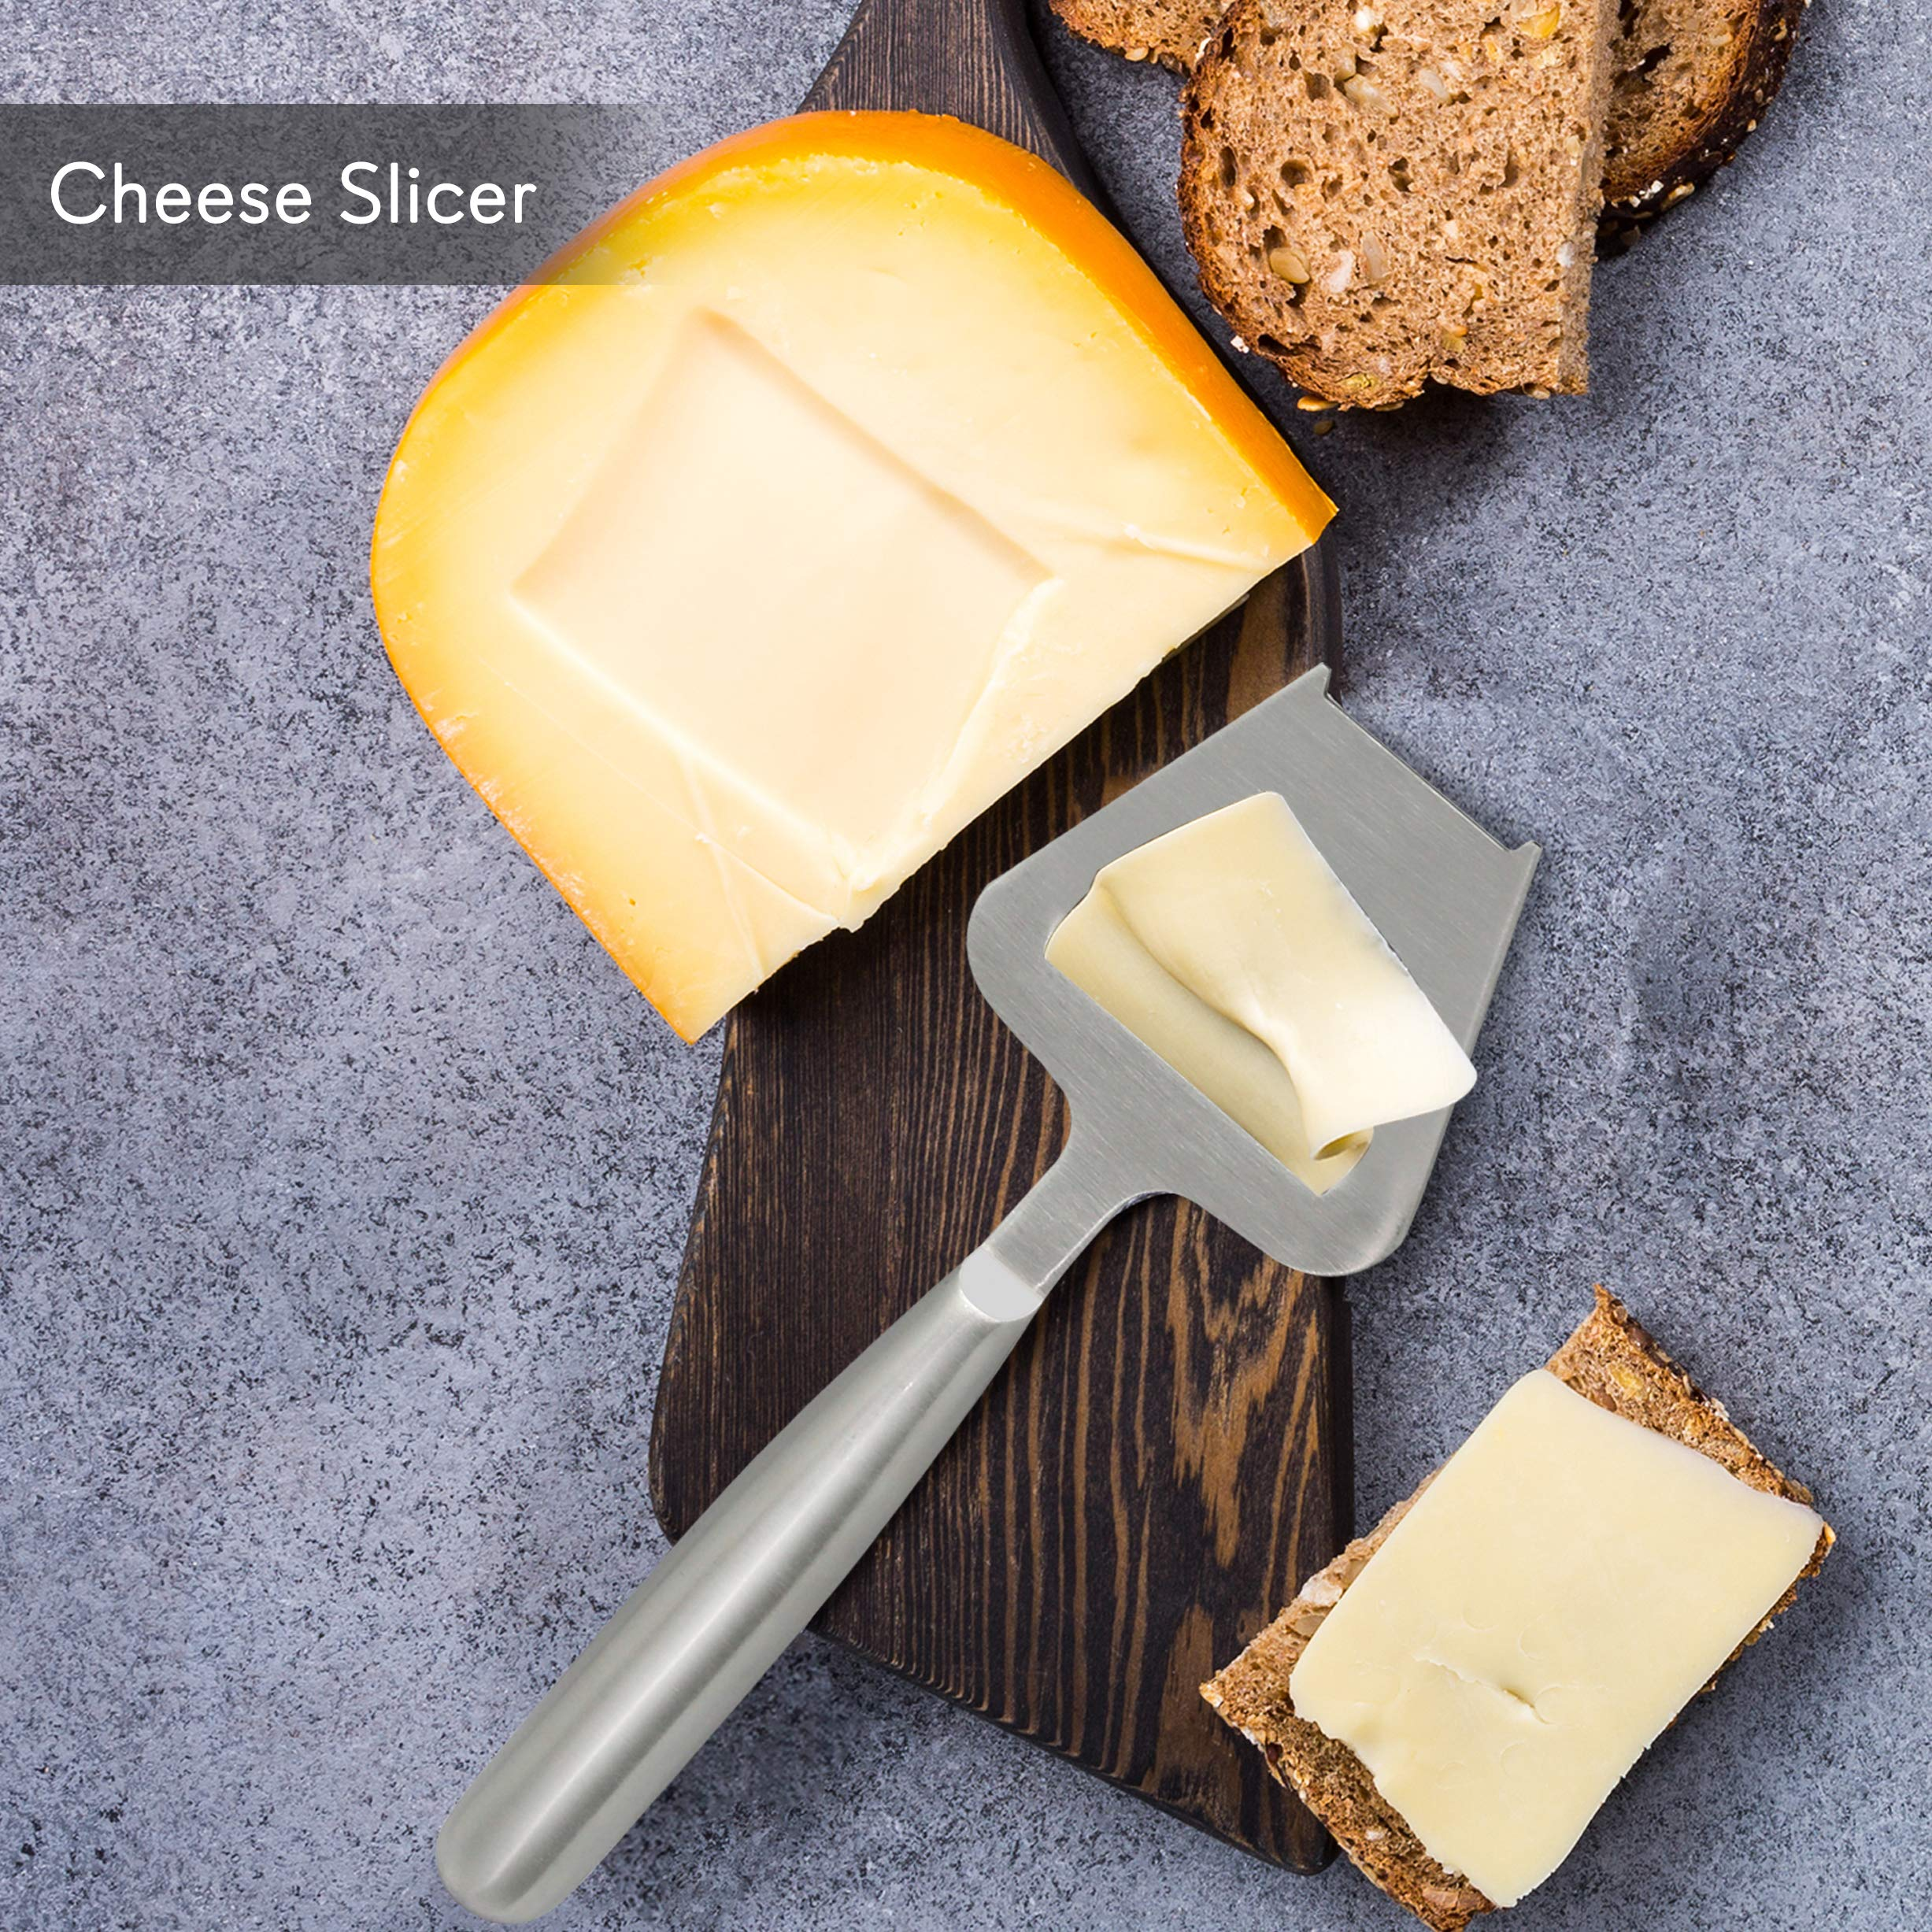 2 Piece Cheese Cutting Set - Portable Fancy Stainless Steel Non Stick Cheese Cutter Knife and Cheese Slicer - Cut, Shave, Slice, Serve, Spread - Gouda Blue Brie Parmesan Cheddar - NutriChef PKCNF10 by Nutrichef (Image #3)